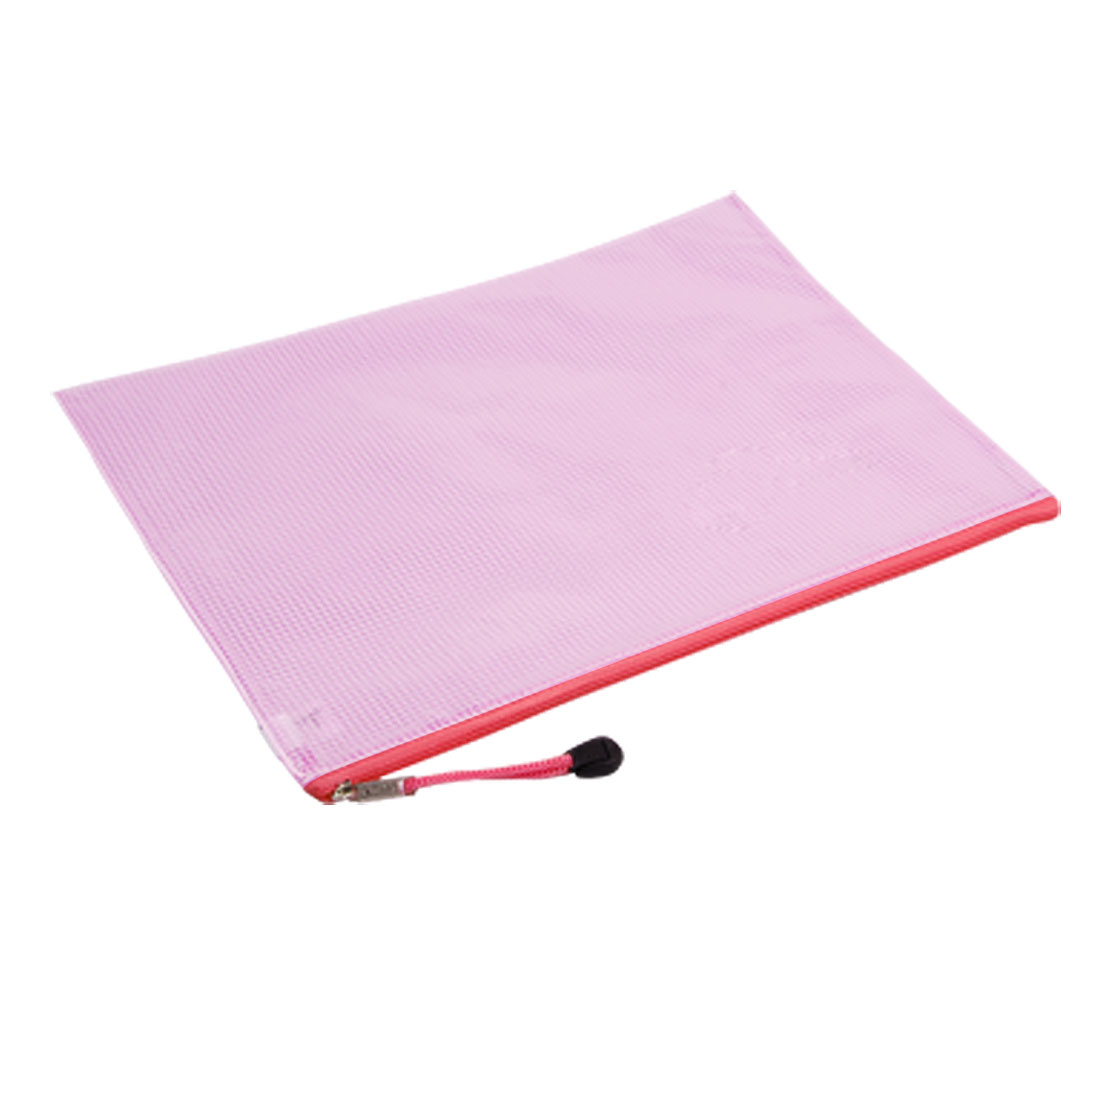 A5 Paper Size Zipper Closure Soft Files Bag Clear Pink